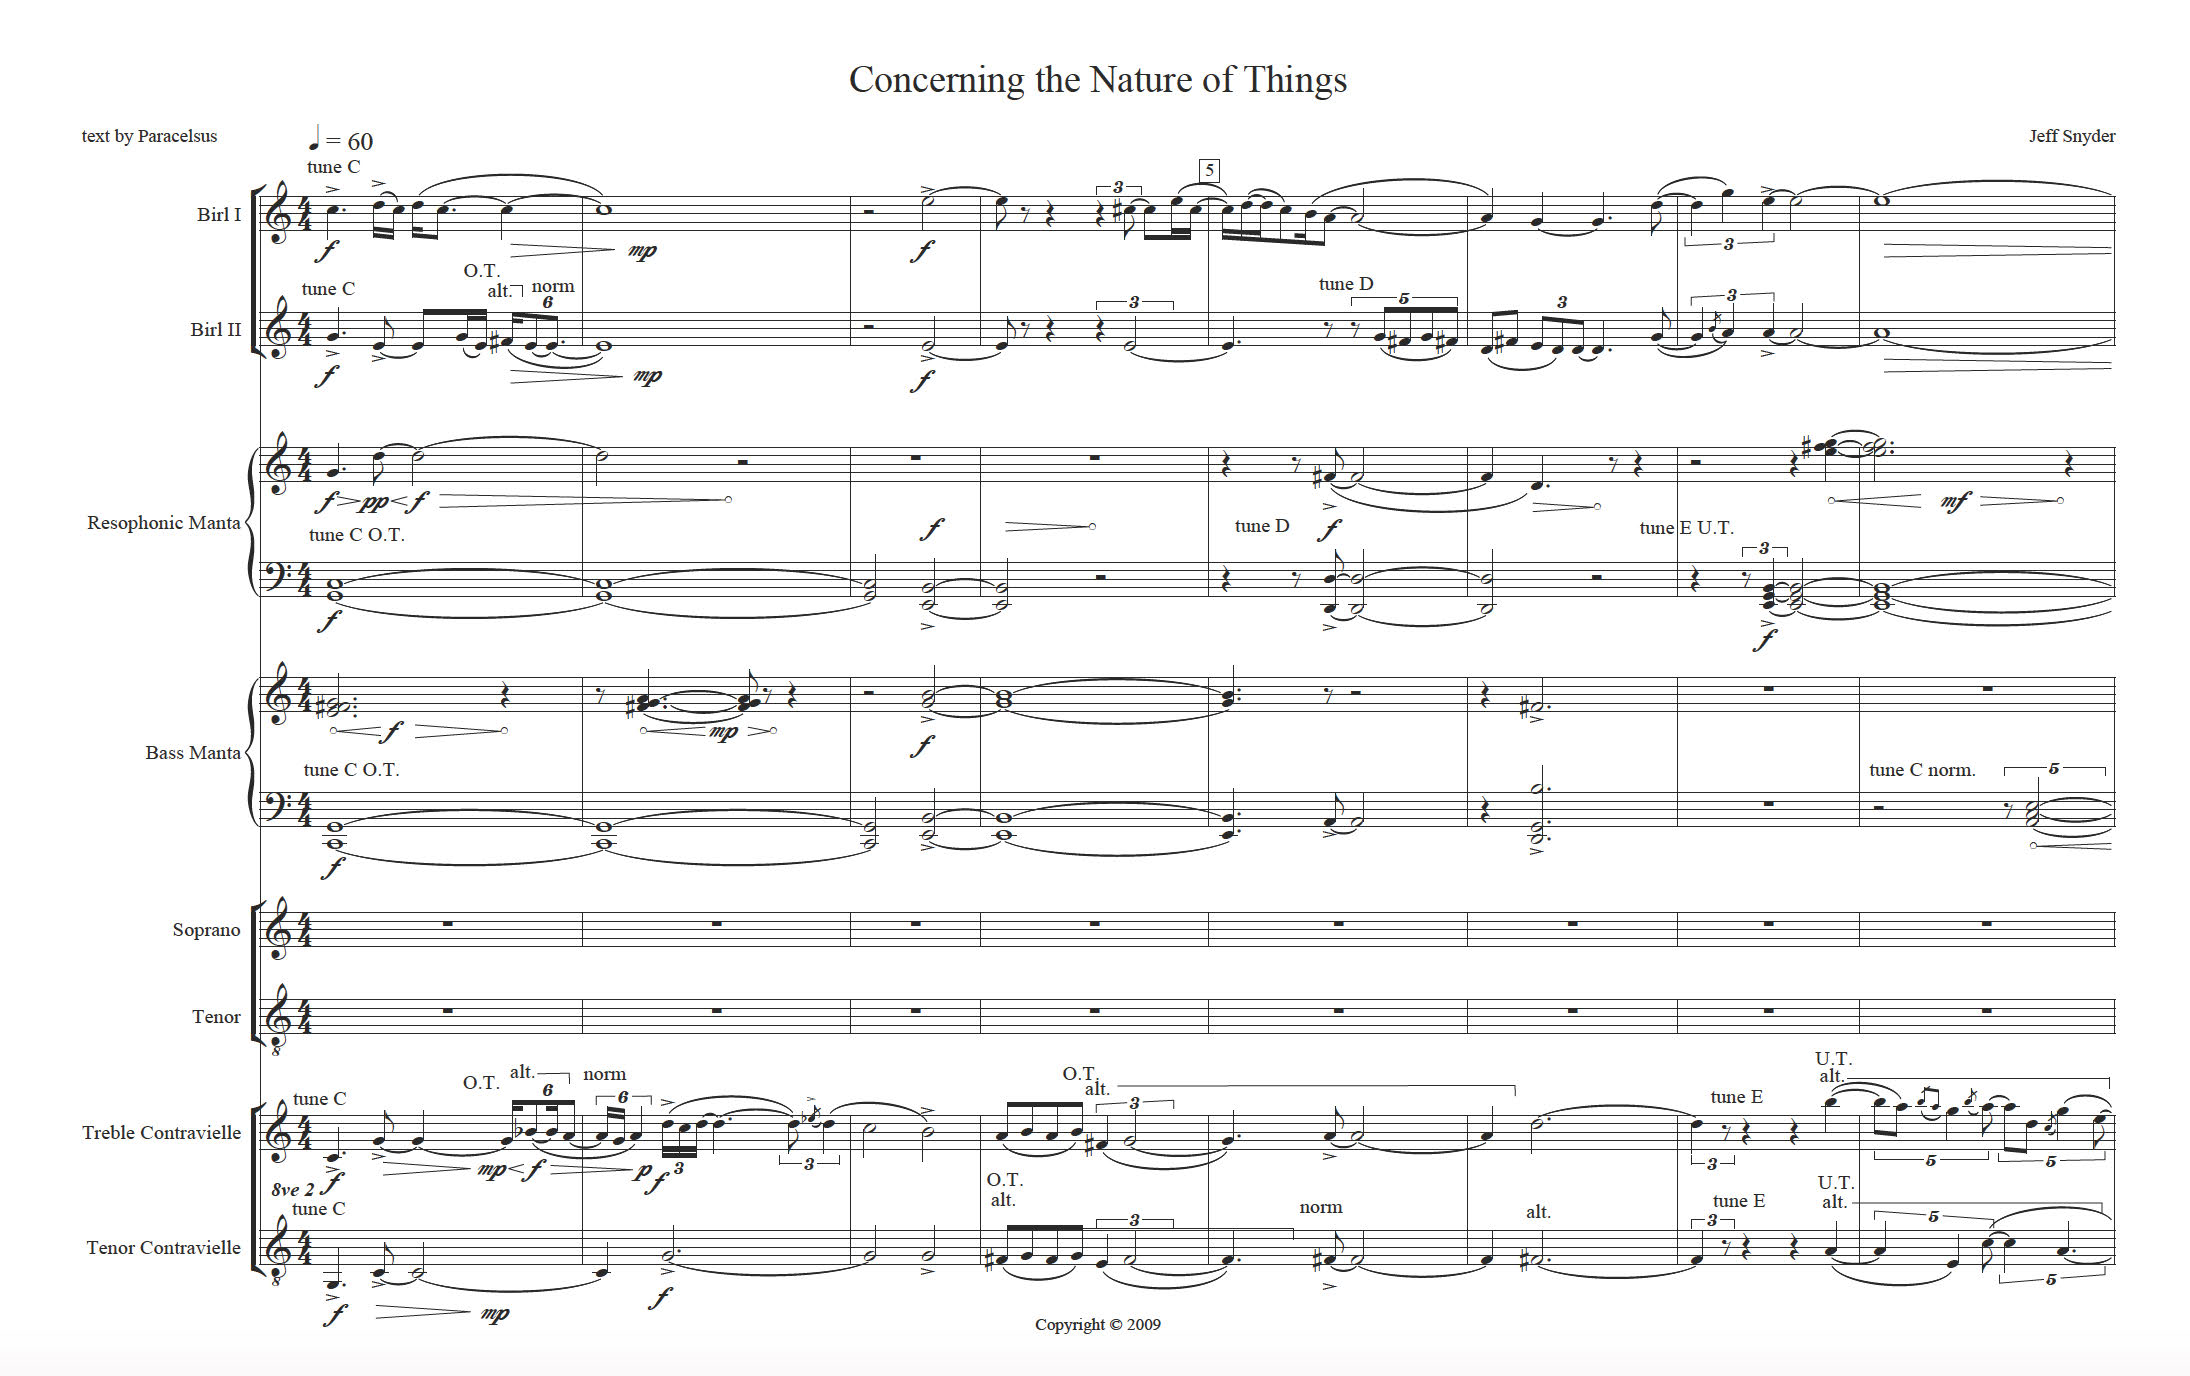 score for new electroacoustic instruments Jeff Snyder